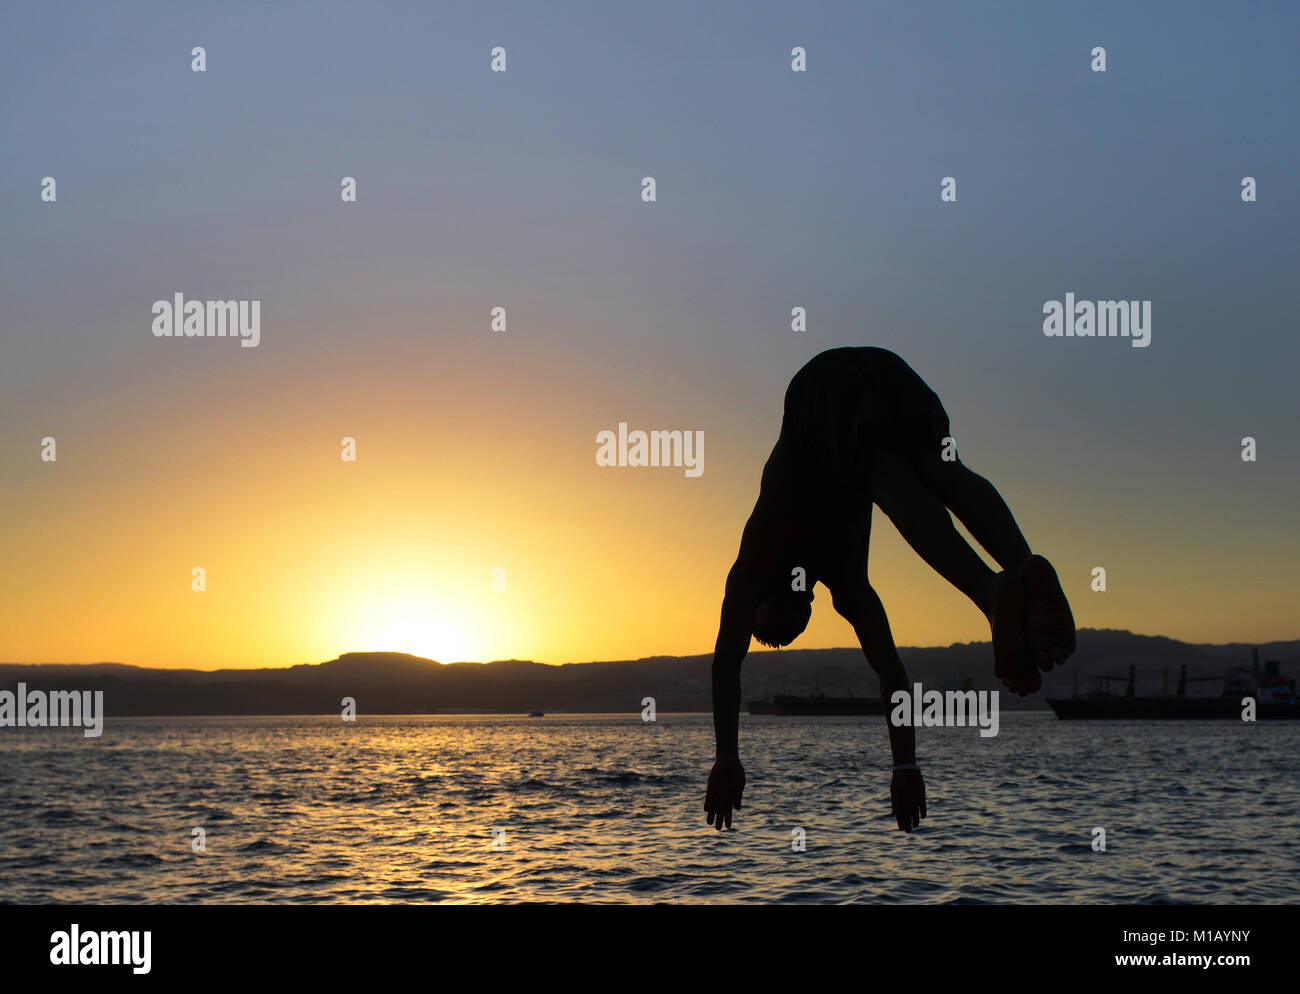 Sunset in Aqaba, Jordan. - Stock Image